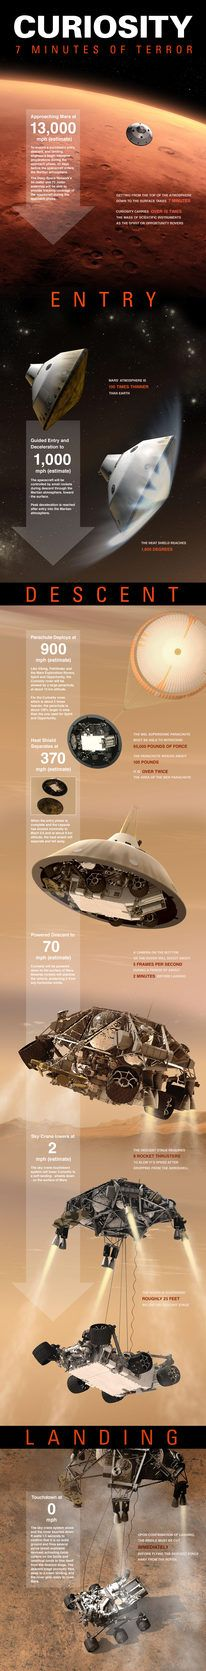 This infographic depicts the suspenseful 7 minutes it takes for Curiosity (Mars Science Laboratory) to get from the top of Mars' atmosphere to its surface.     Represented are the Entry, Descent and Landing phases, often referred to simply as